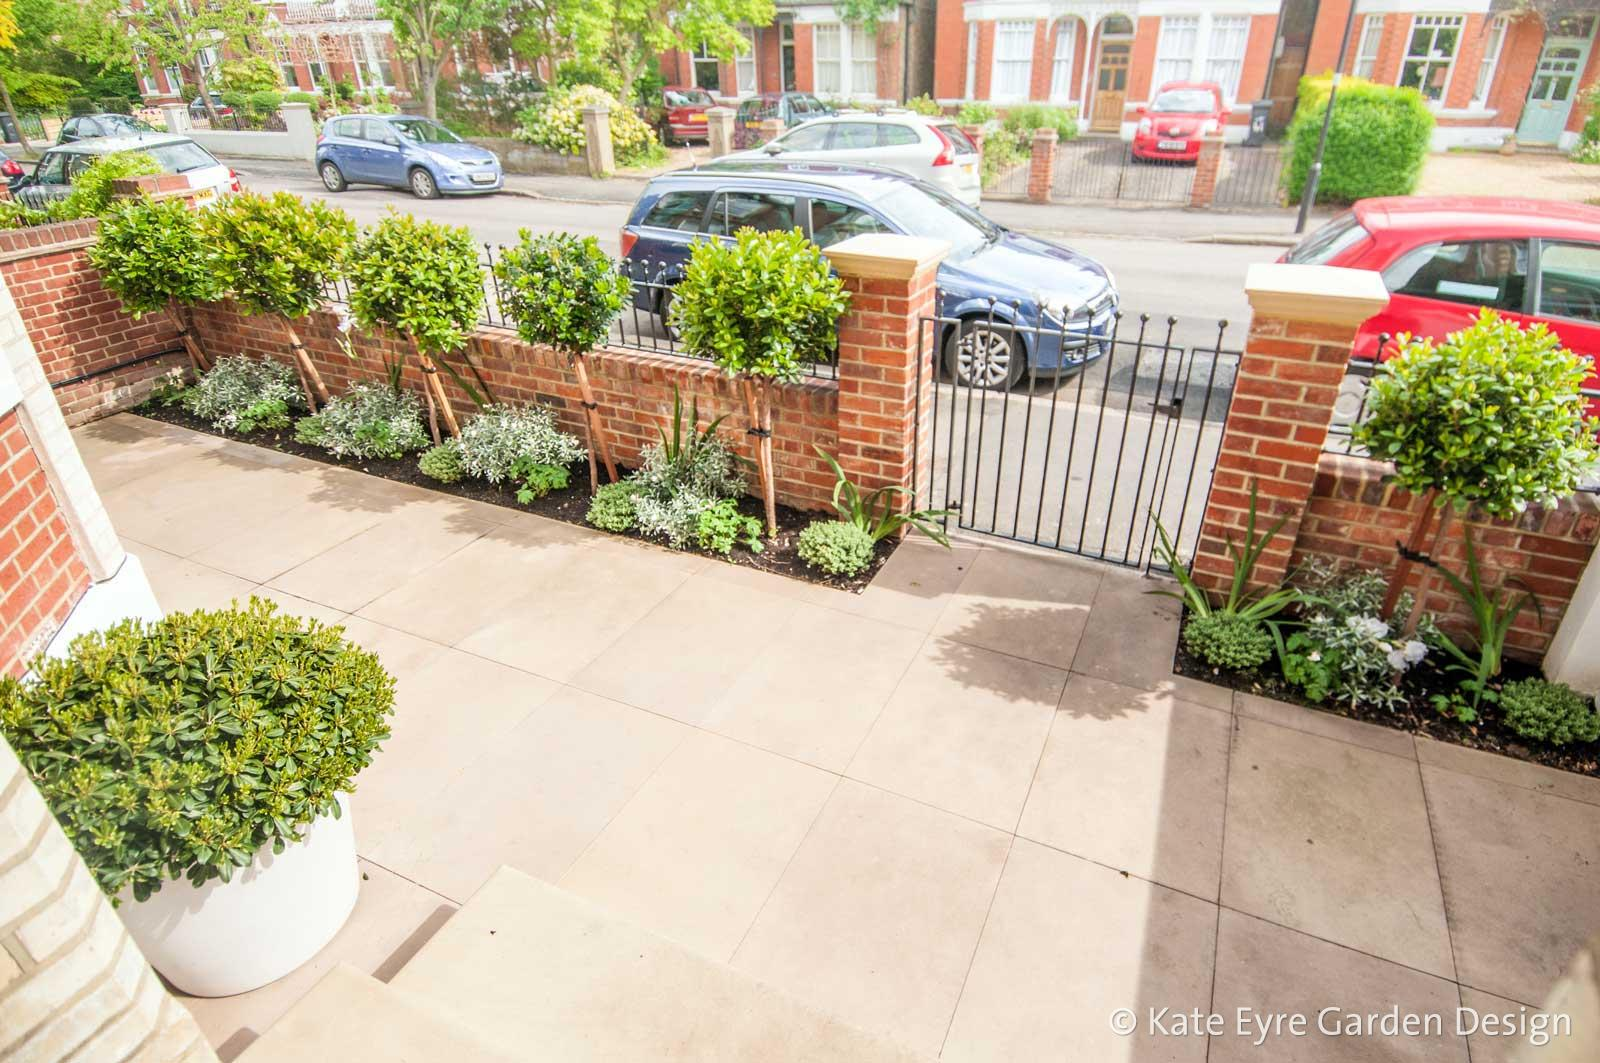 front garden design in idmiston road london 2 - Front Garden Ideas London